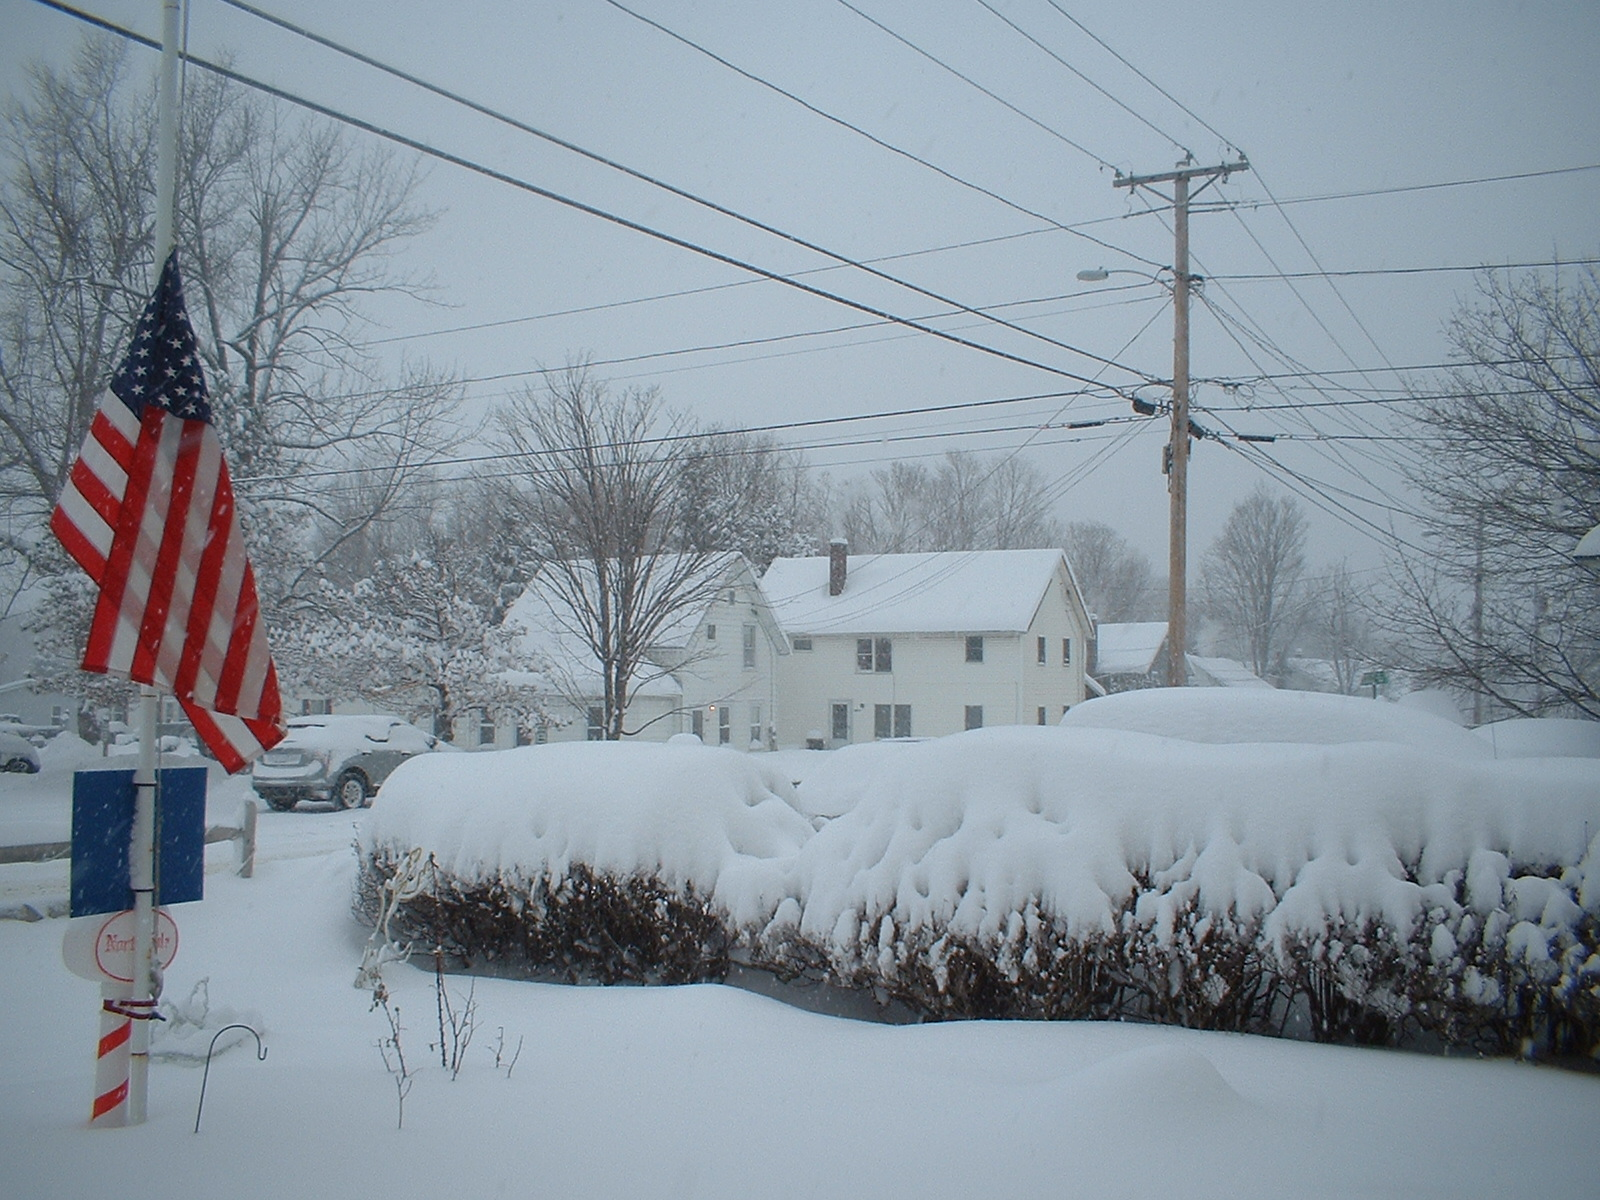 it is winter in Southern Vermont